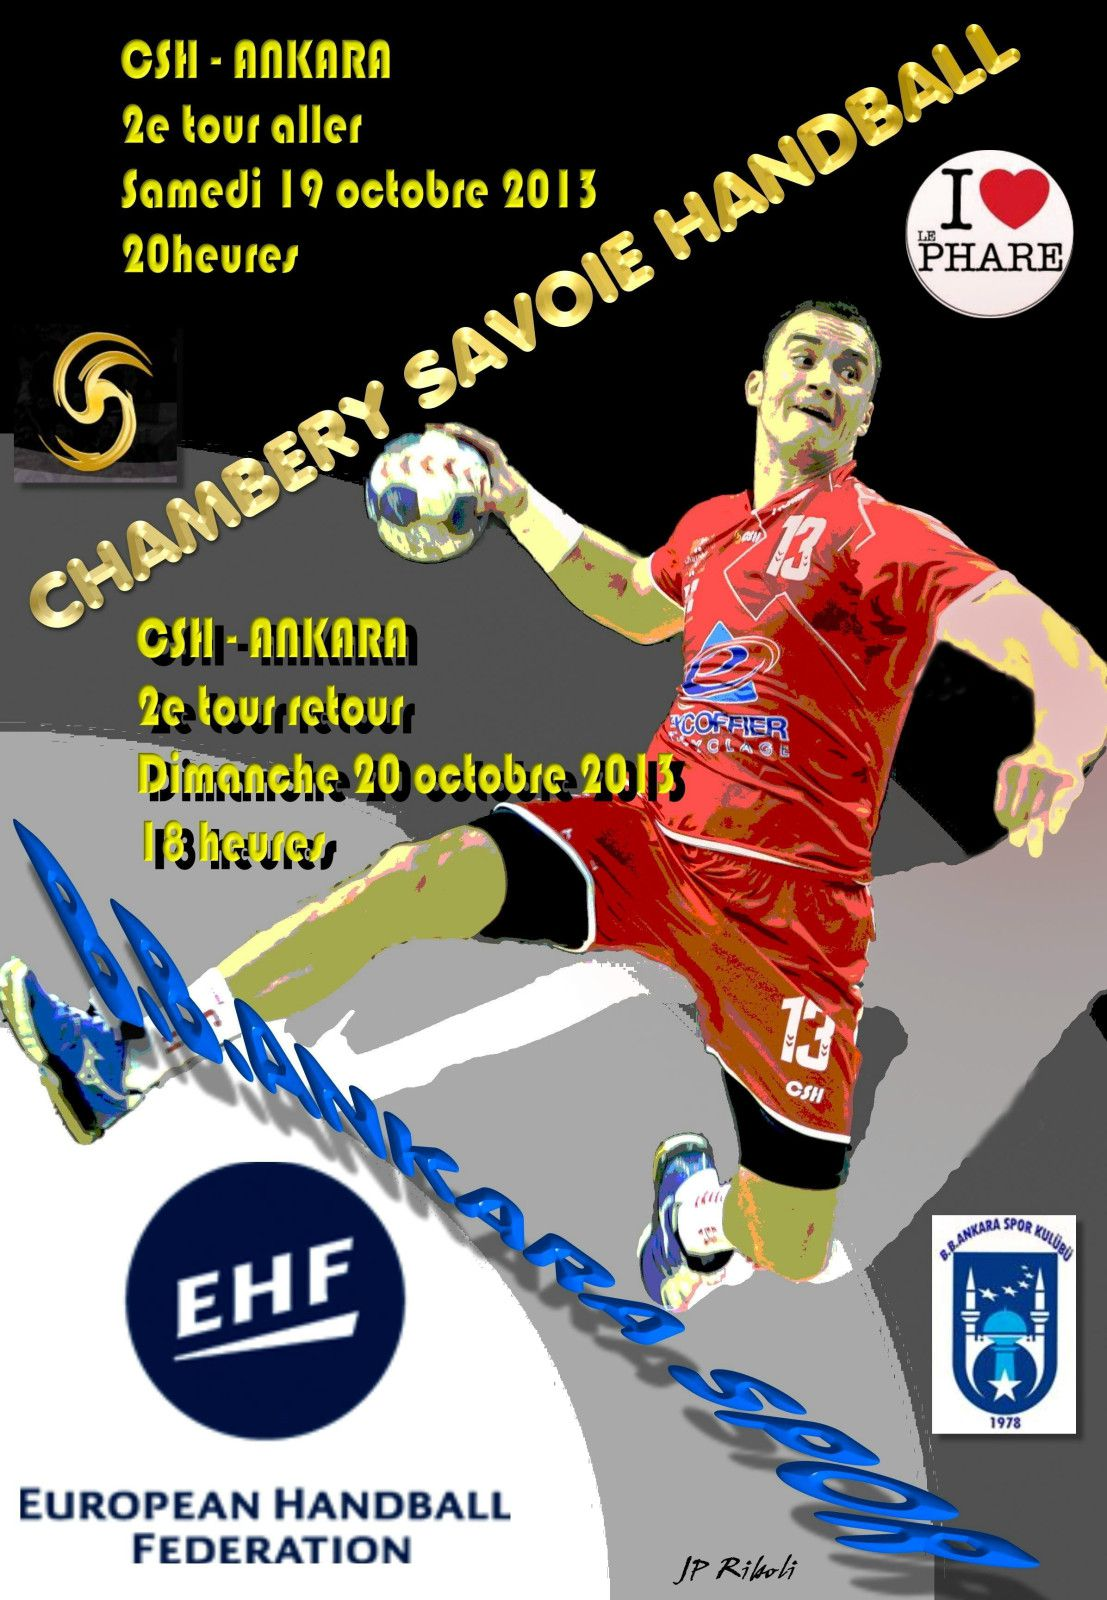 Affiche-coupe-d-Europe-CHAMBERY-ANKARA-19-20-Octobre-2013--.jpg